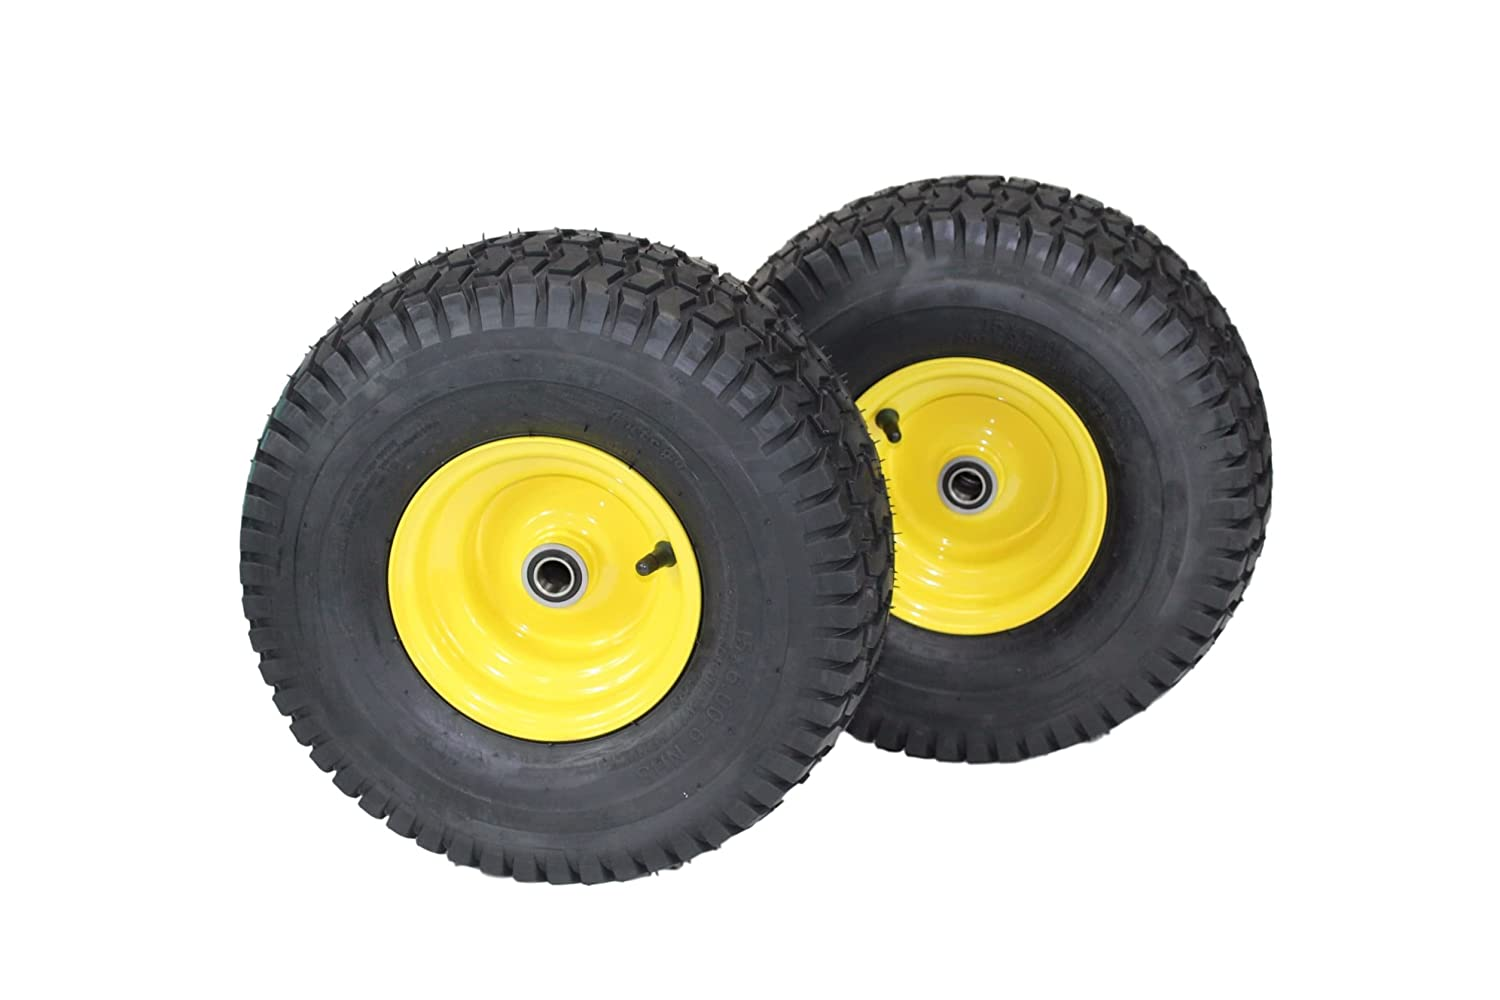 "(Set of 2) 15x6.00-6 Tires & Wheels 4 Ply for Lawn & Garden Mower Turf Tires .75"" Bearing"